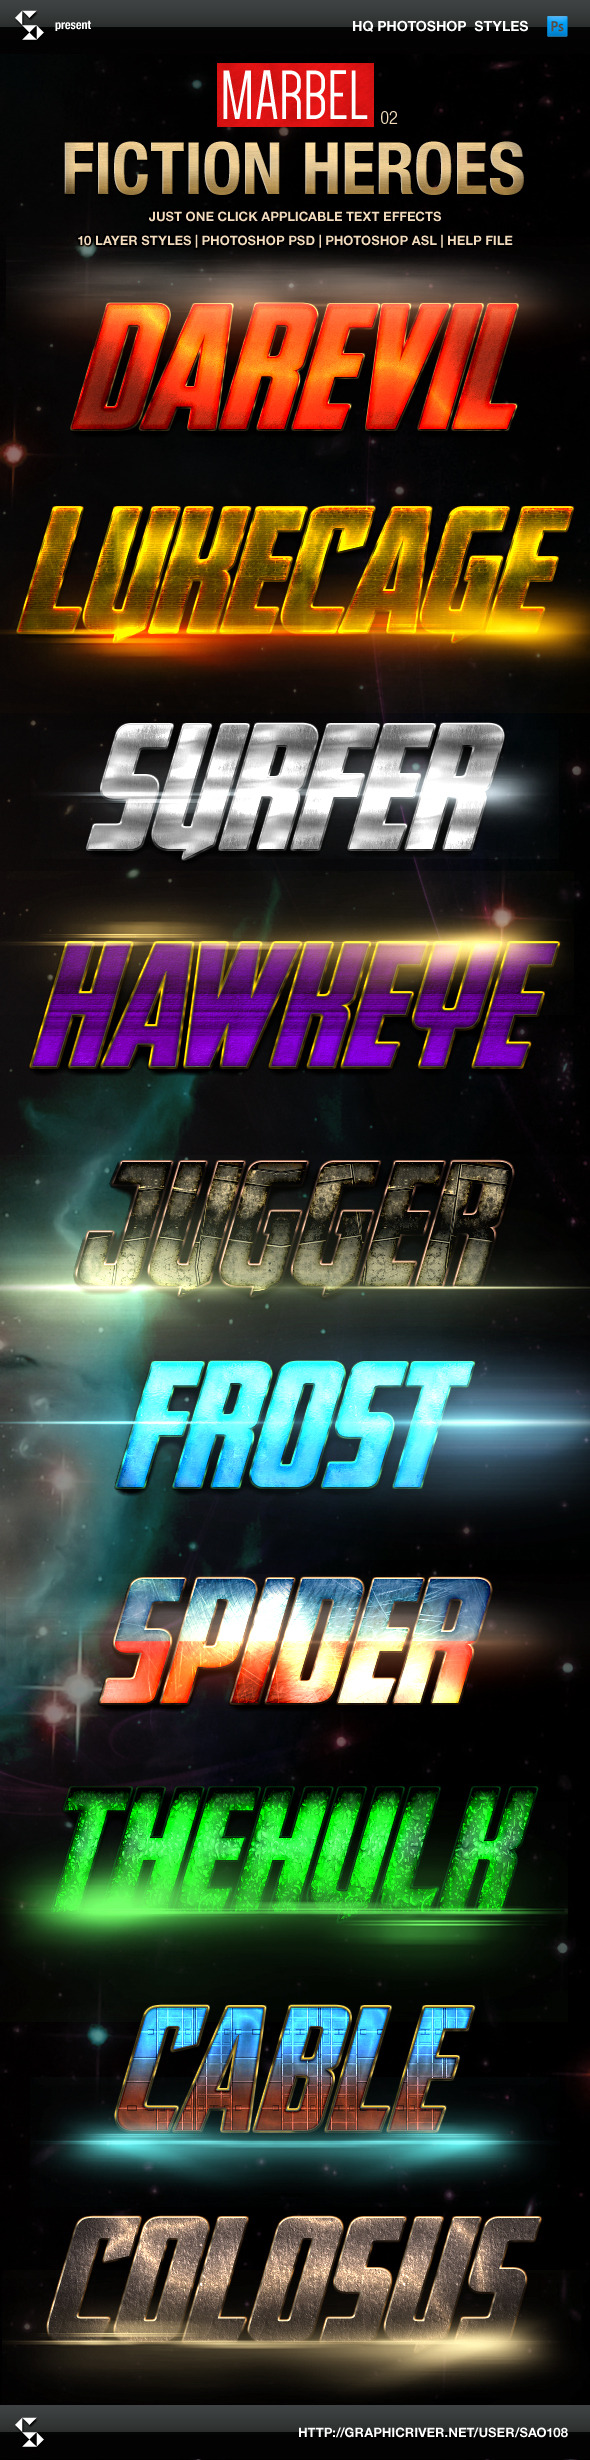 Blockbuster Heroes Style Text Effects 02 - Text Effects Styles